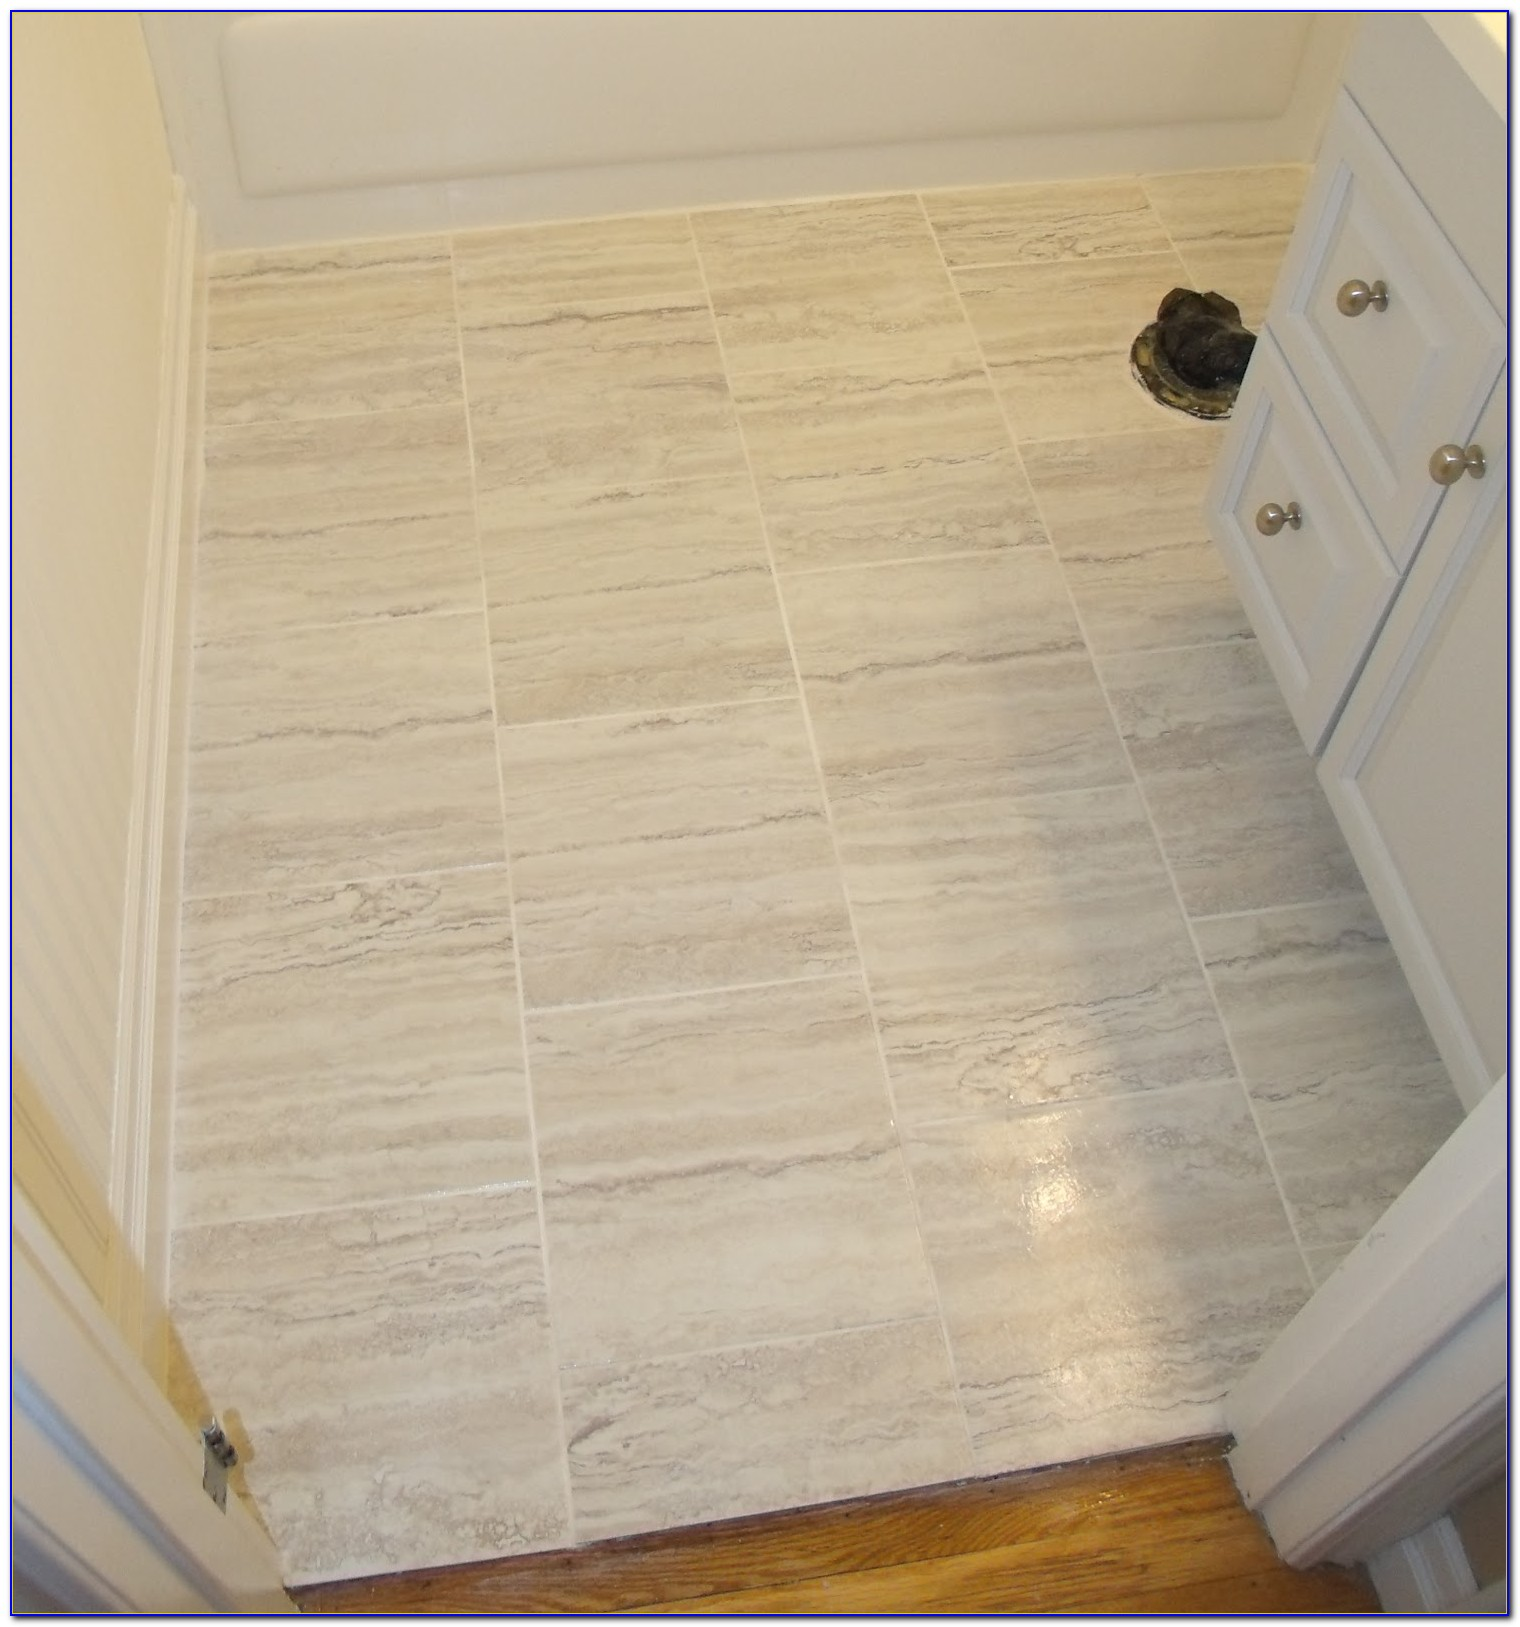 Vinyl Tile With Grout In Bathroom Tiles Home Design